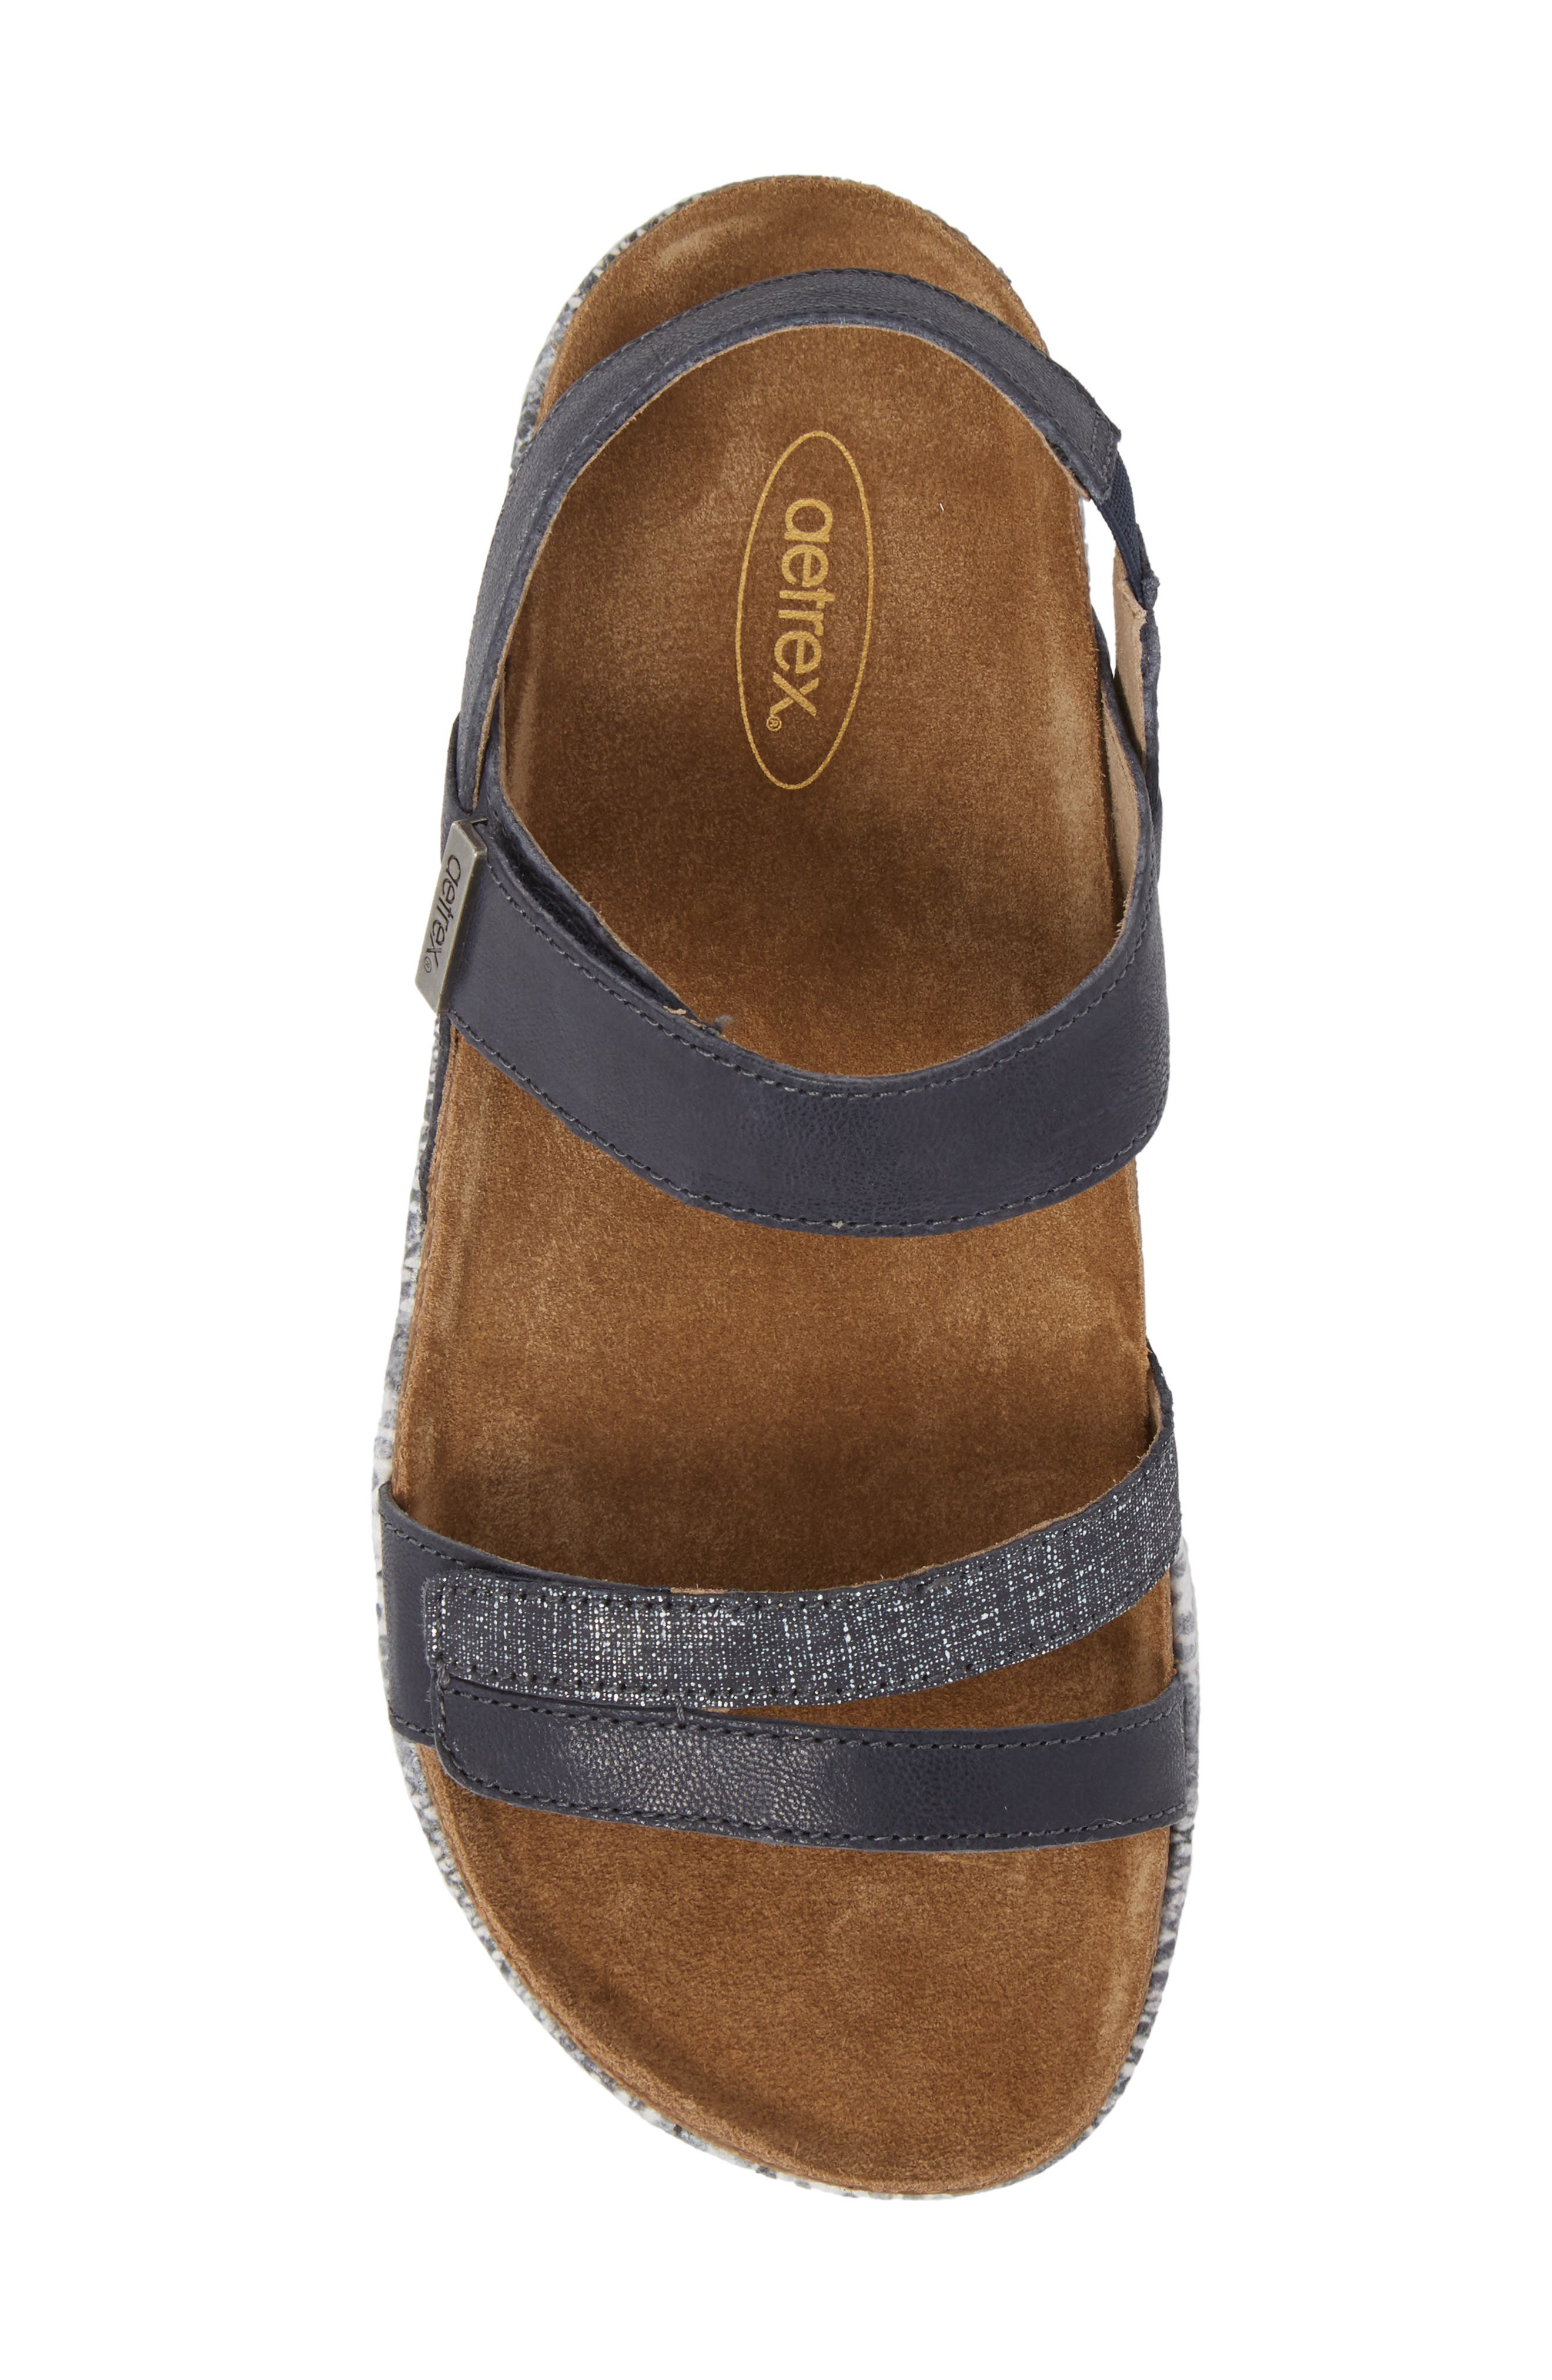 Bethany Sandal,                             Alternate thumbnail 5, color,                             Navy Multi Leather